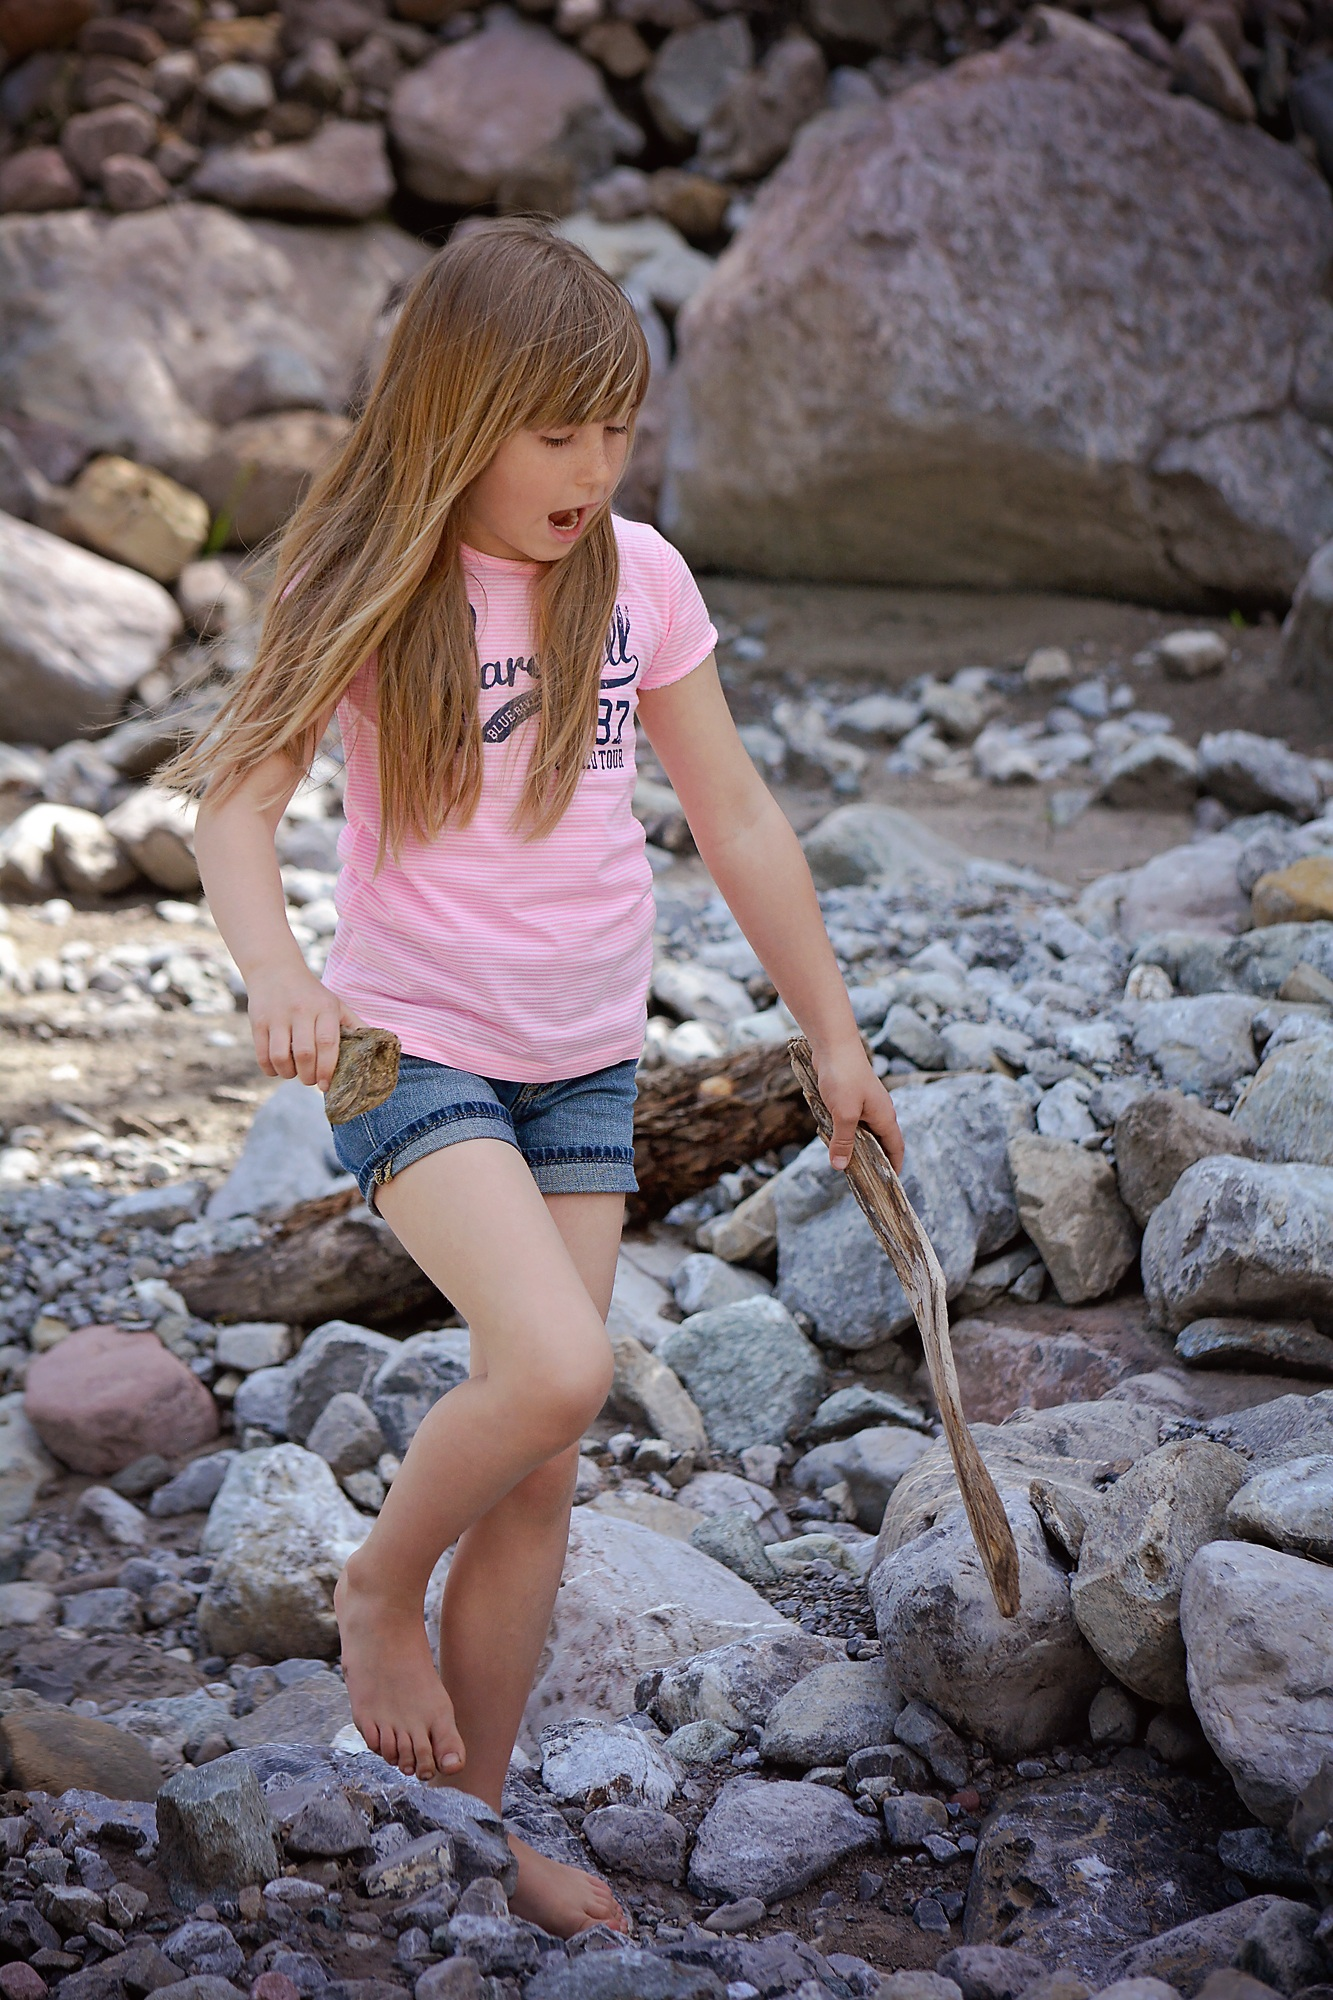 Little Girls Nails And Girls On Pinterest: Little Girl With Long Hair On The Rocks Near The Pond Free